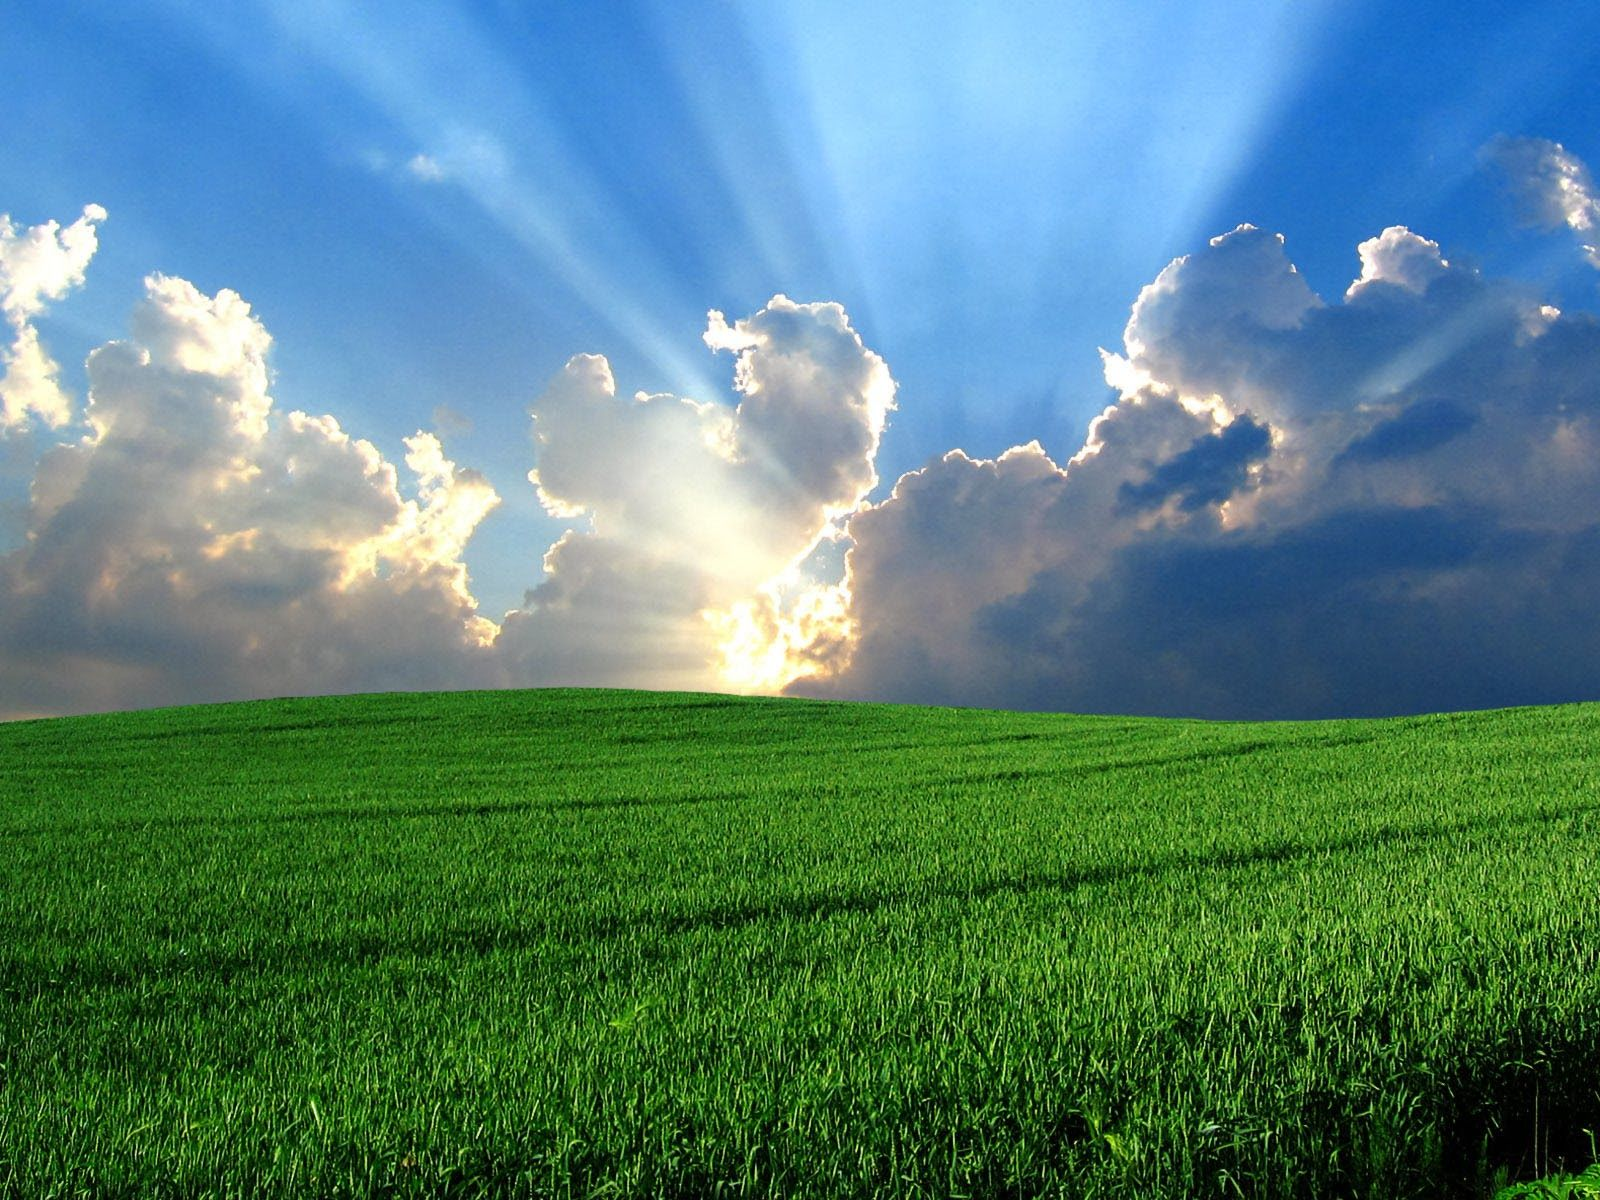 Windows Xp Bliss wallpaper free desktop backgrounds and